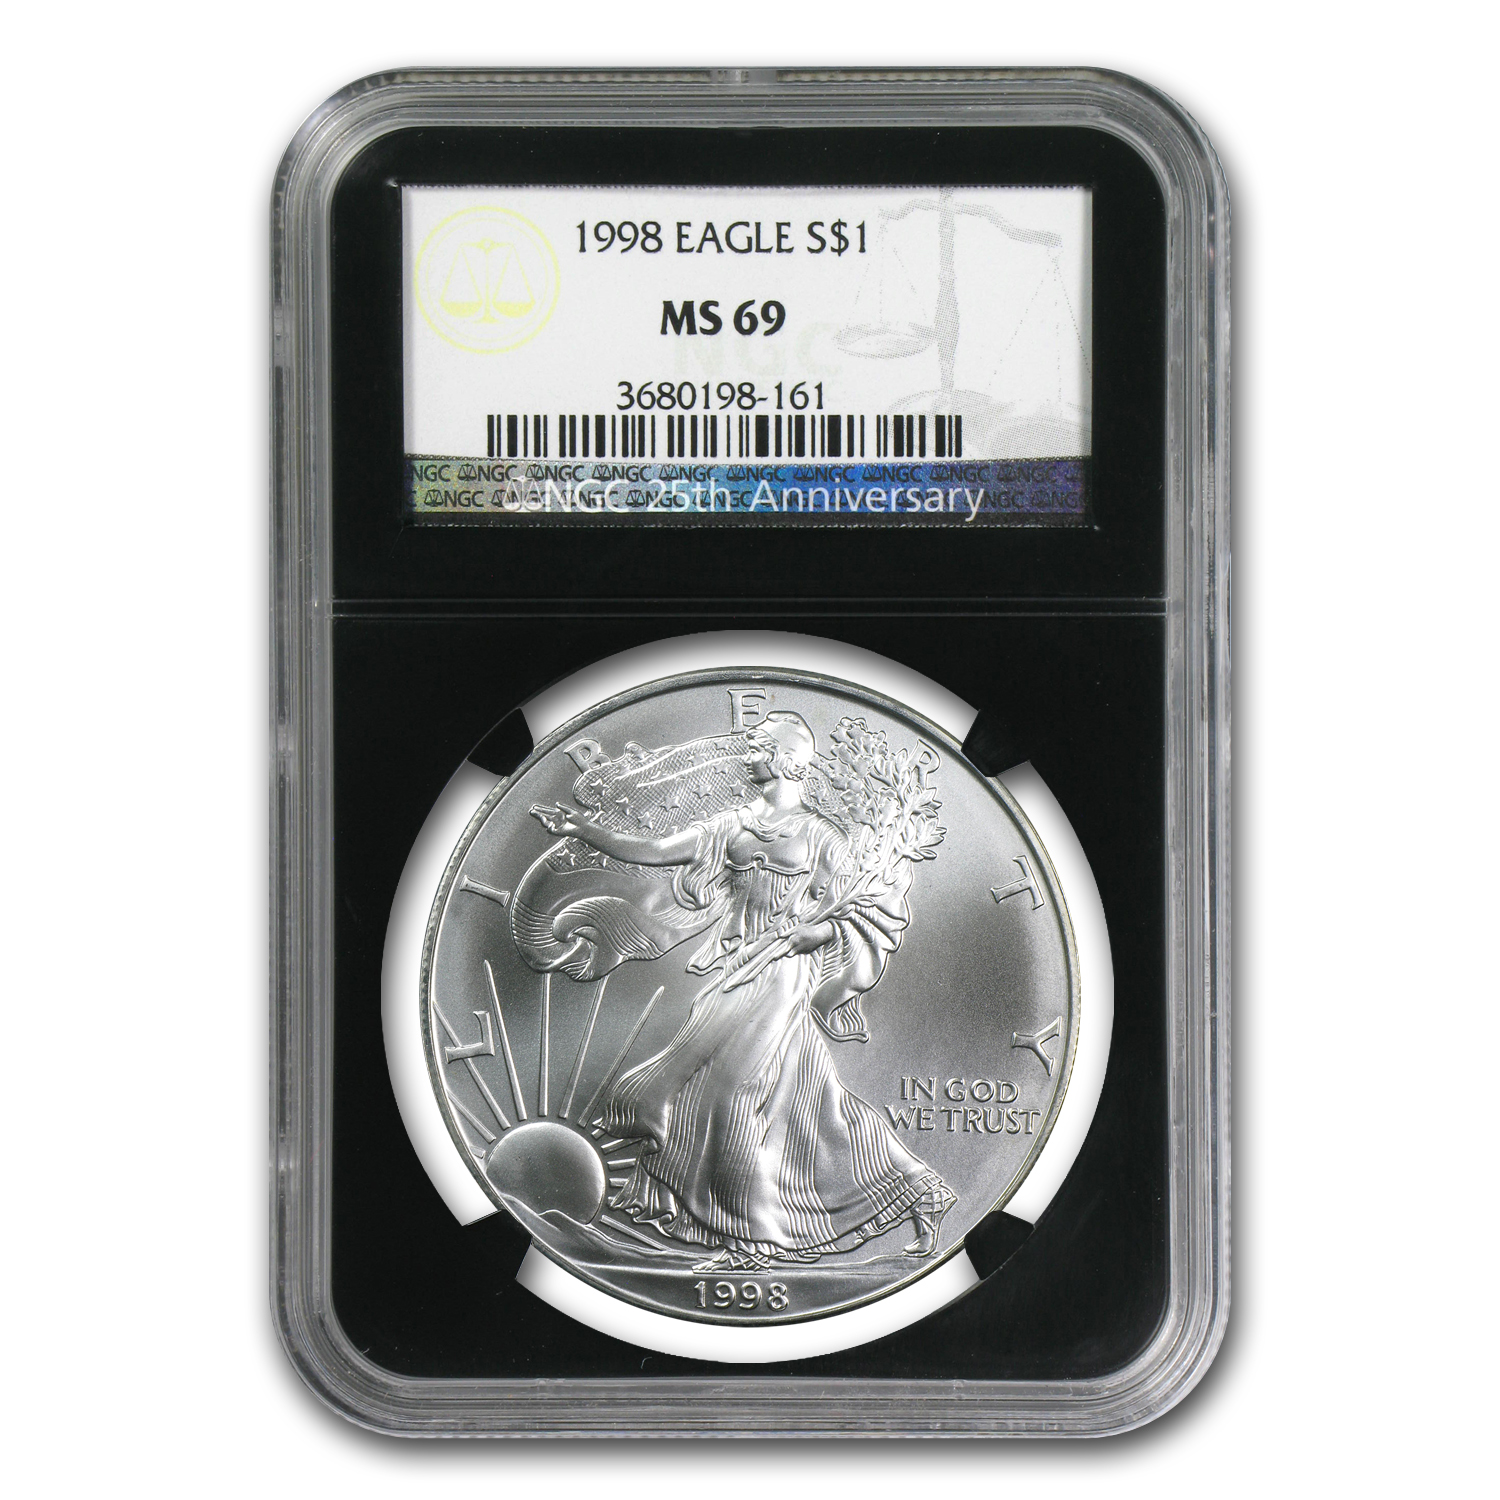 1986-2012 27-Coin Silver Eagle Set MS-69 NGC (25th Ann, Blk Hldr)